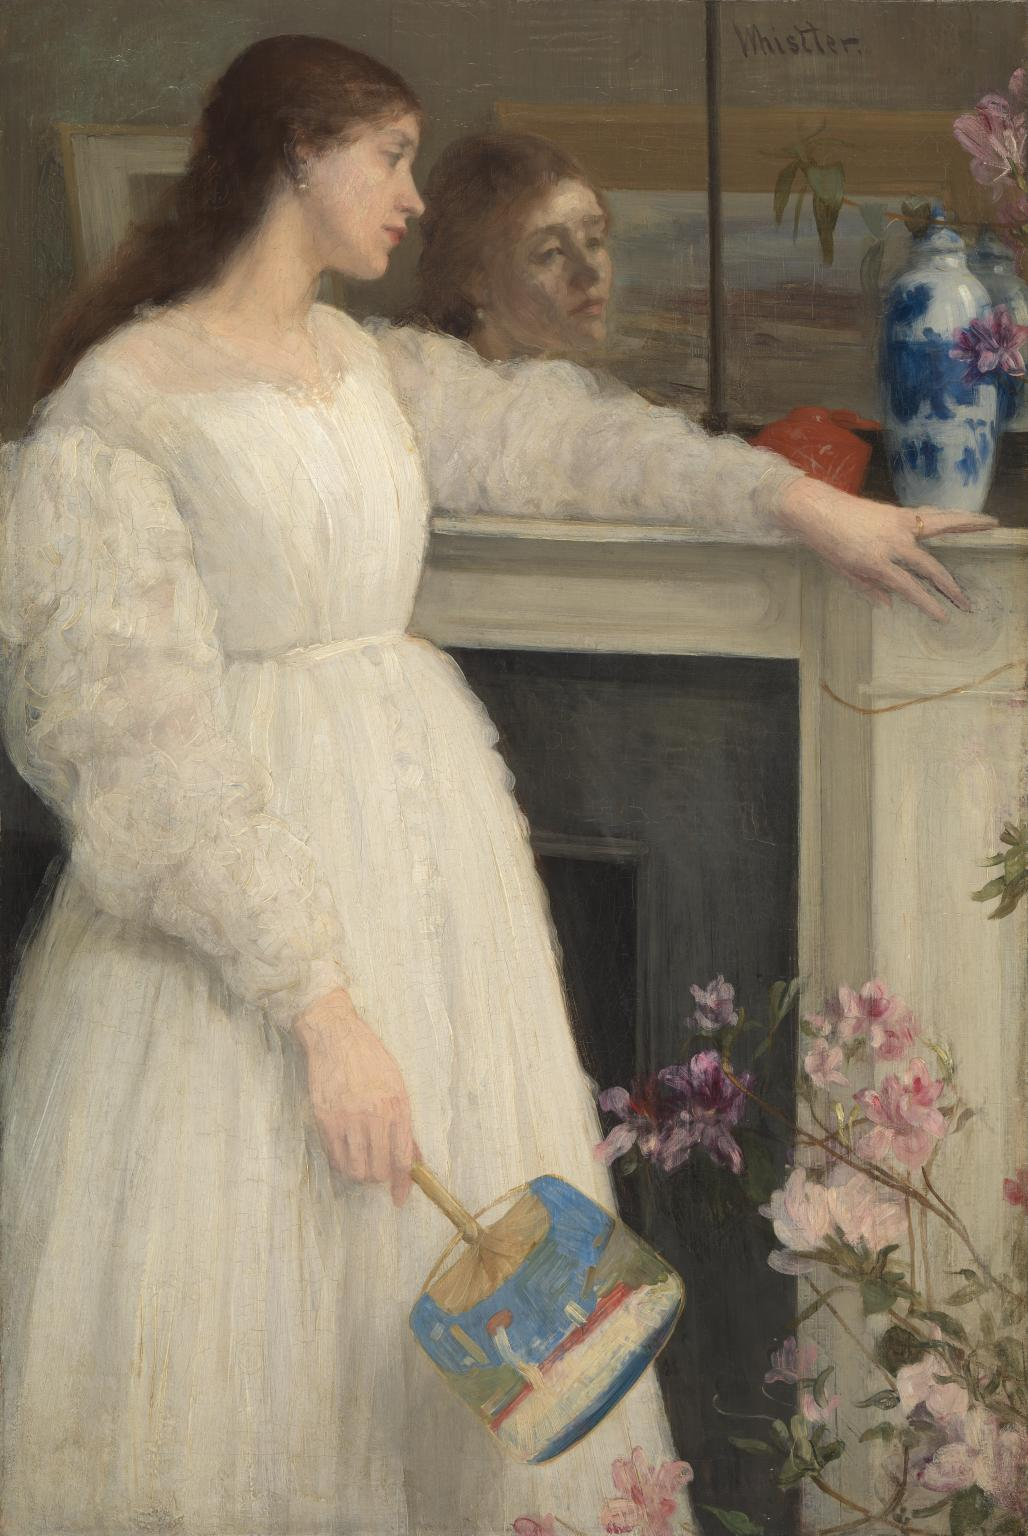 Symphony in White, No. 2: The Little White Girl 1864 by James Abbott McNeill Whistler 1834-1903